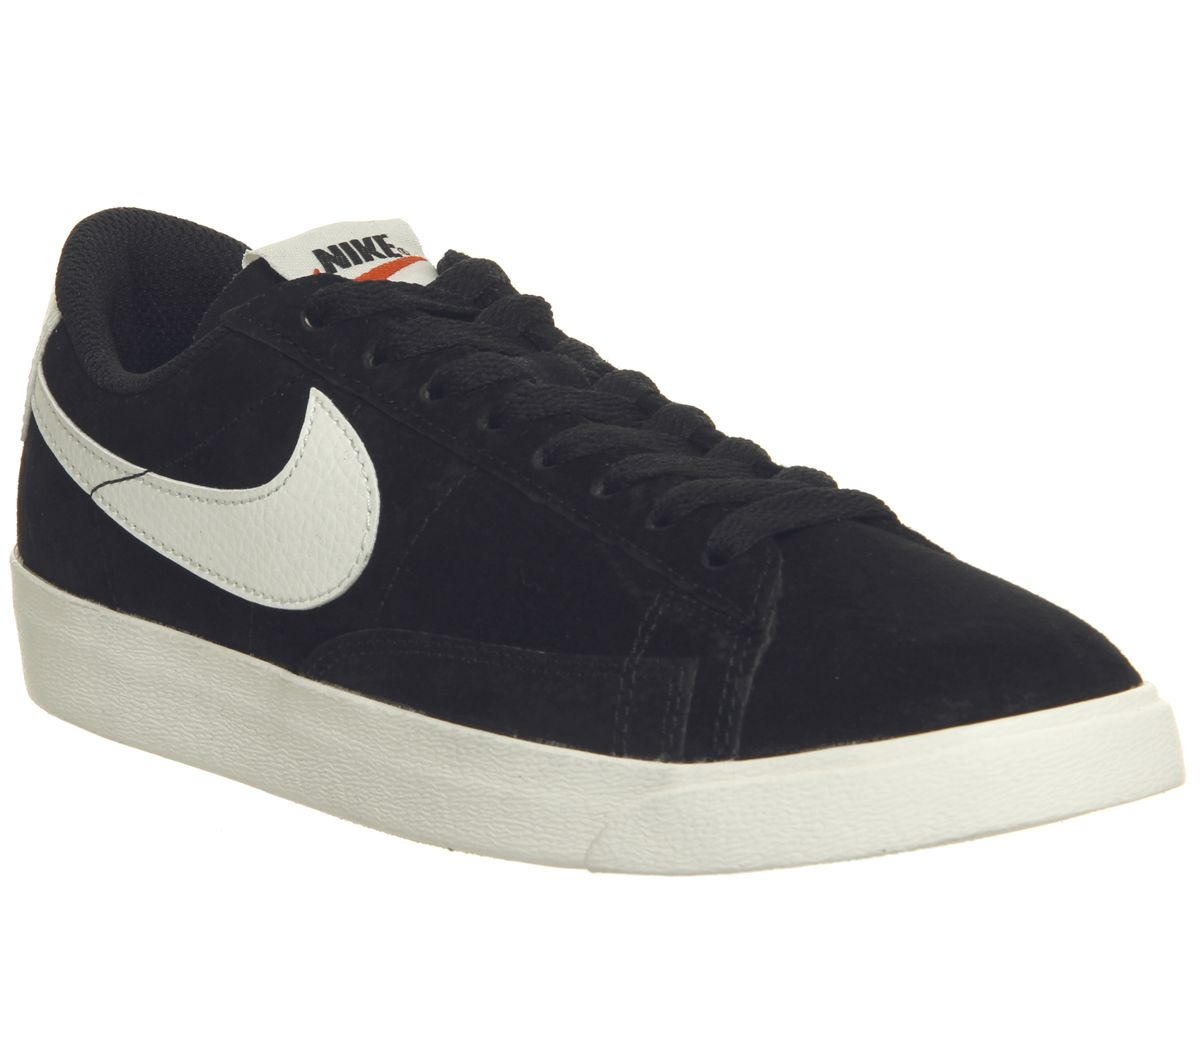 brand new c2384 9e3ff Nike Blazer Low Trainers Black White F - Hers trainers